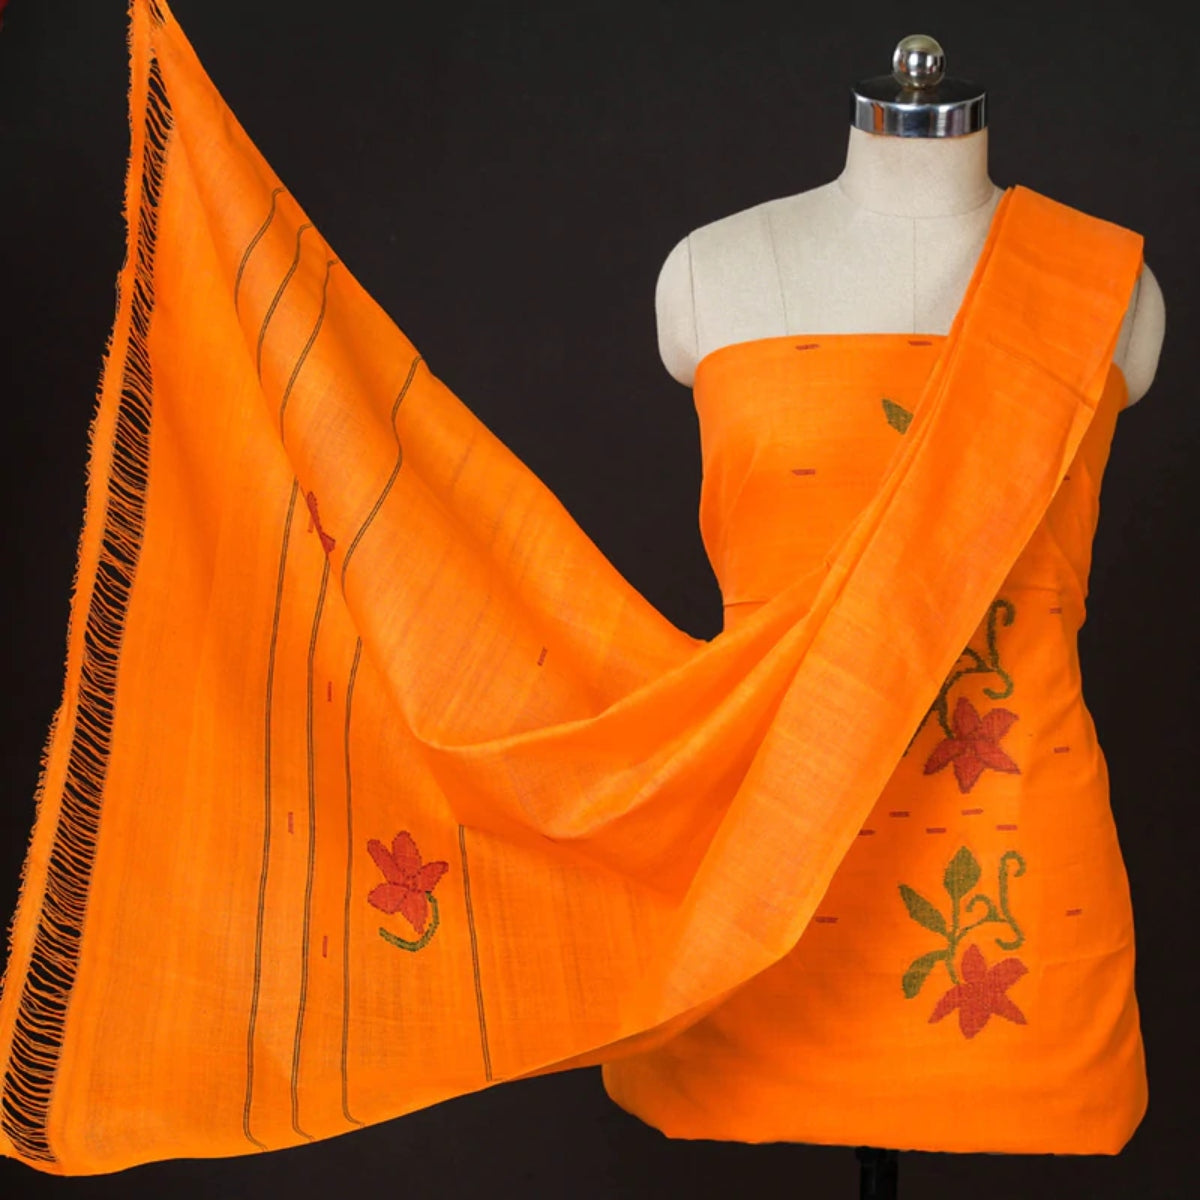 Dress Material Online Buy Unstiched Dress Materials For Women Online Itokri आई ट कर